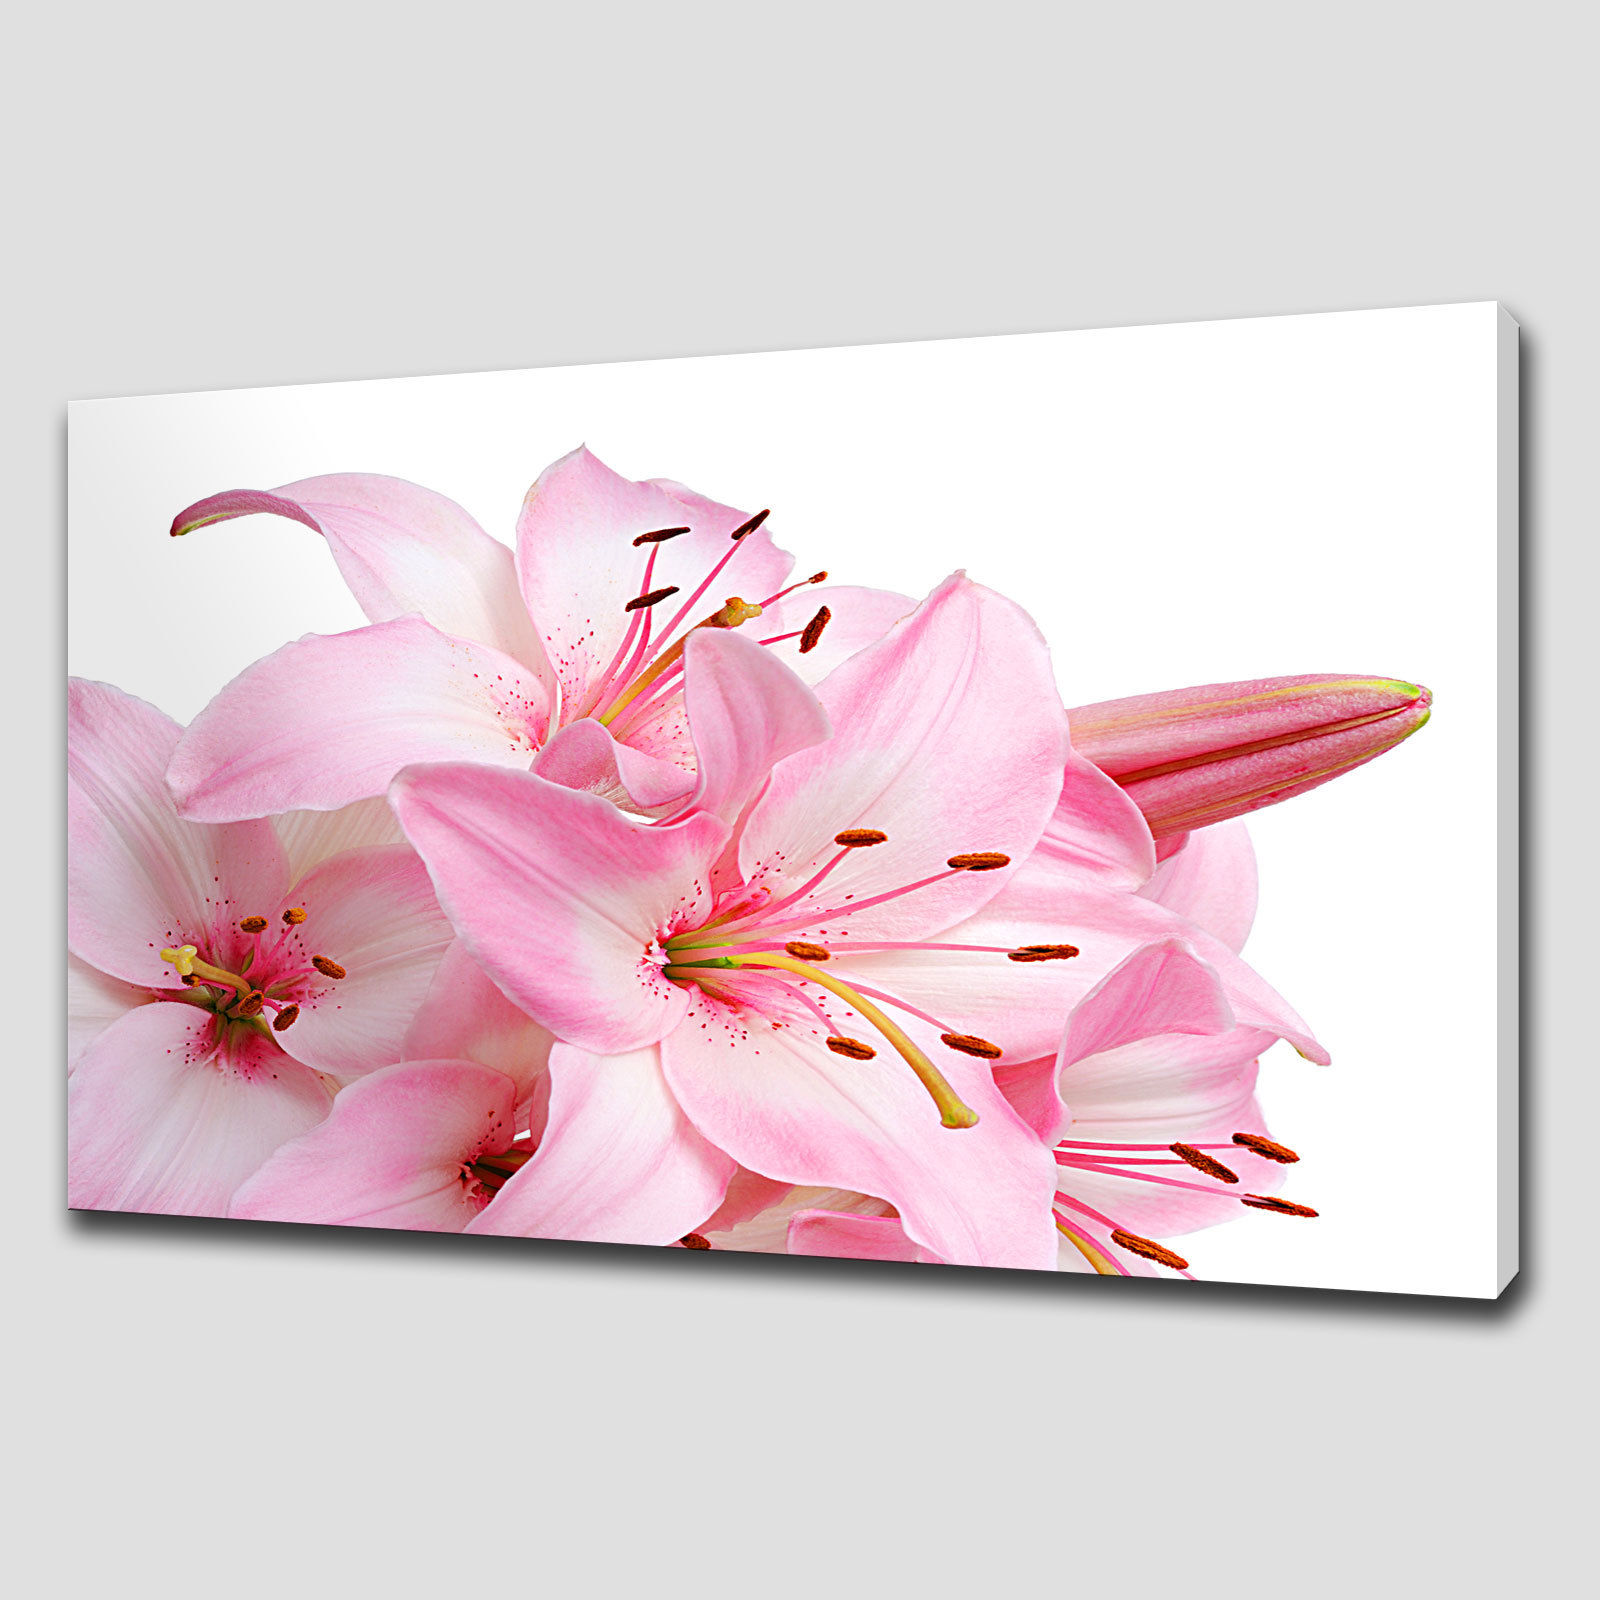 PINK-LILY-FLORAL-LARGE-CANVAS-WALL-ART-PICTURES-PRINTS-HOME-DECOR-SIZE-VARIETY-111526896555